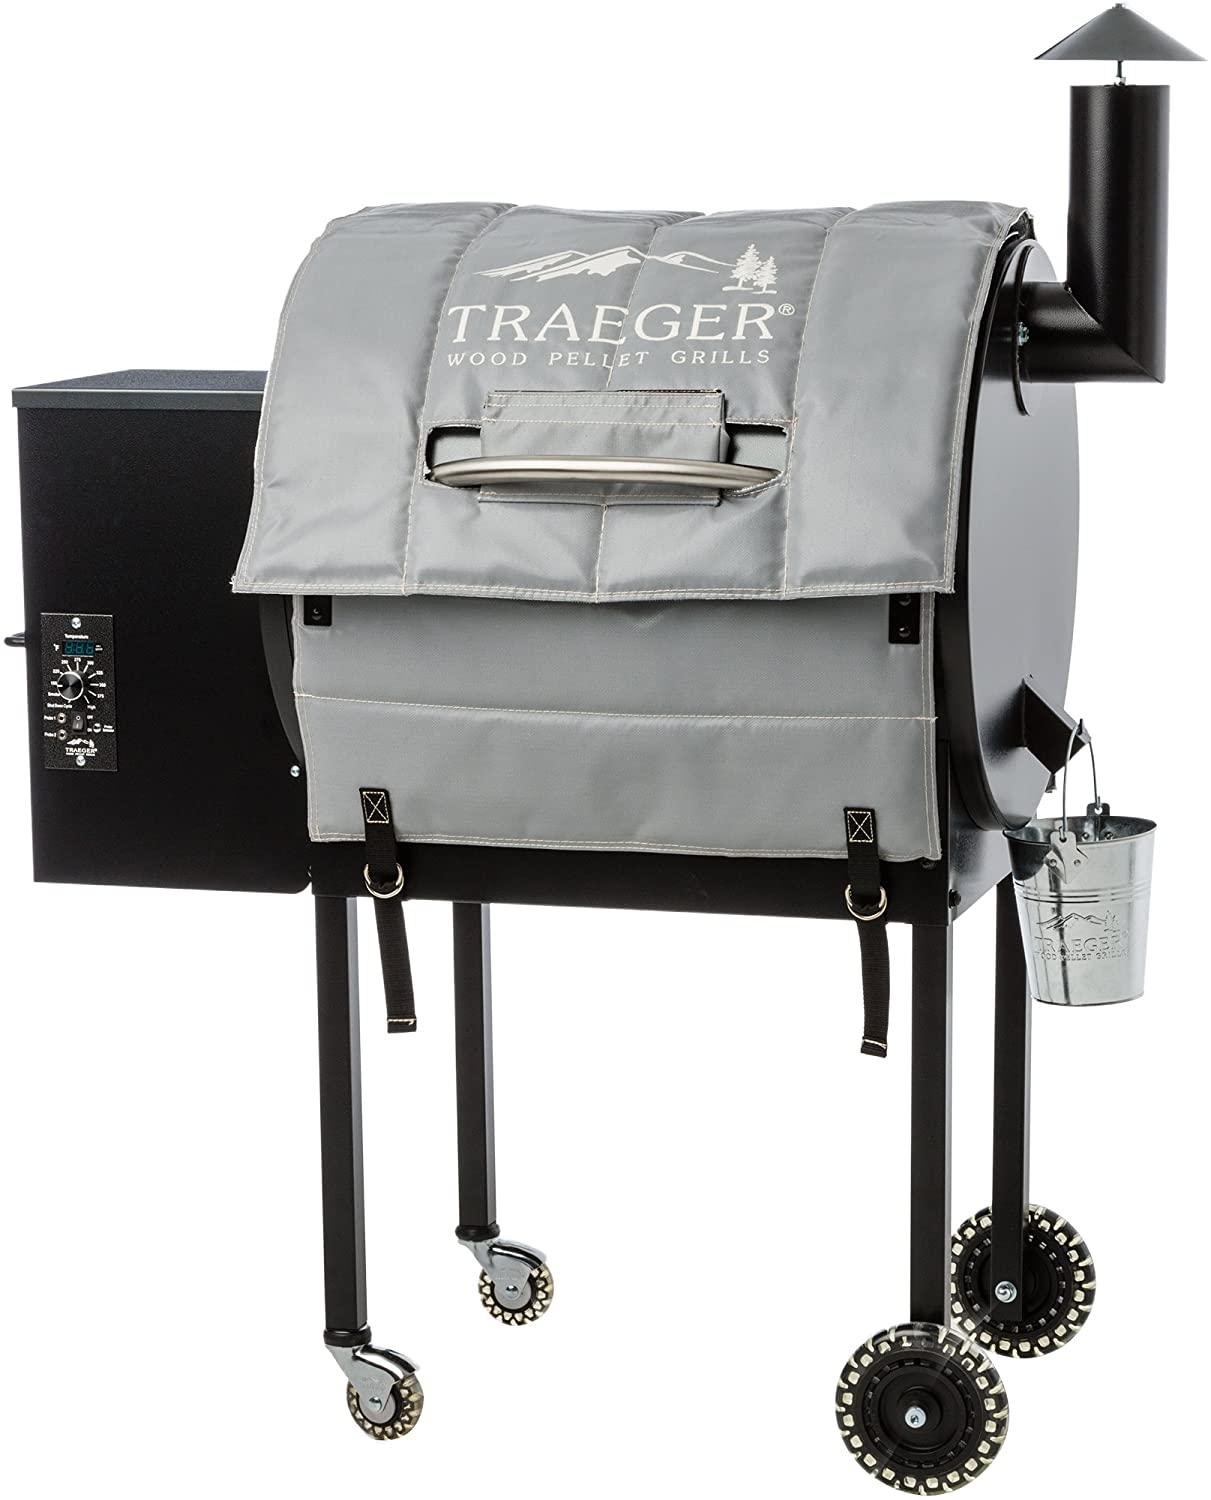 Cuisinart CCG-100 Portable charcoal grill